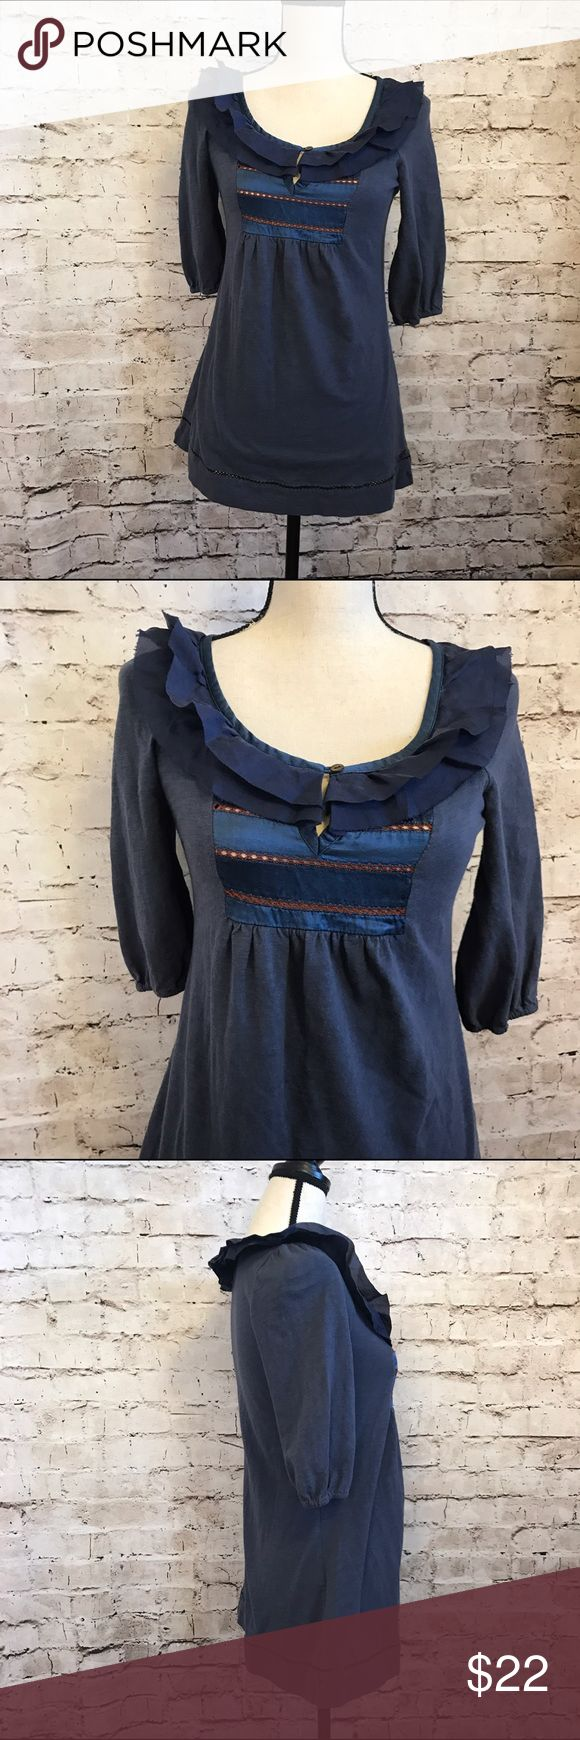 """Miss Me Blouse Blue Flowy Shirt Peter Pan Collar Gently worn no real signs of wear. 1/2 sleeves dark blue with red stitching. Gathered sleeves. Full loose fit. Approx measurements:bust31"""" length: 25"""" Miss Me Tops Blouses"""